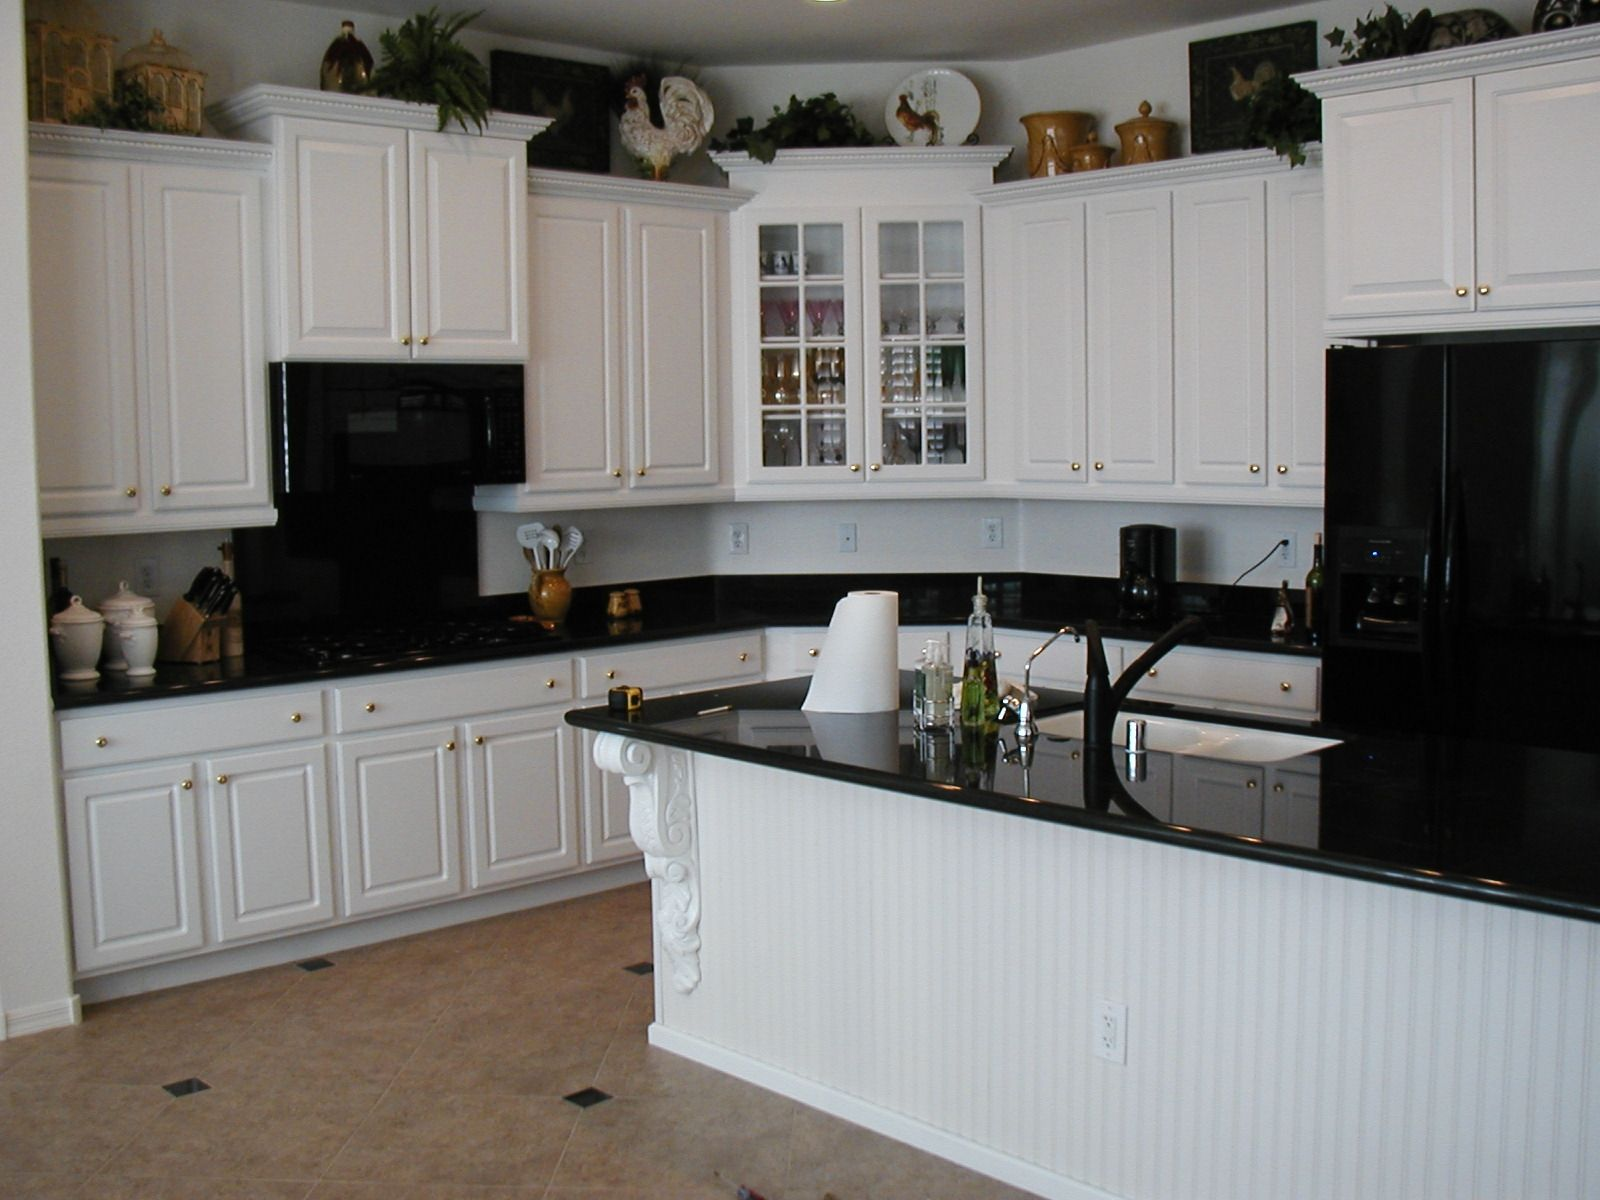 White Kitchen With Black Appliances creamy white kitchen cabinets with black appliances | are white